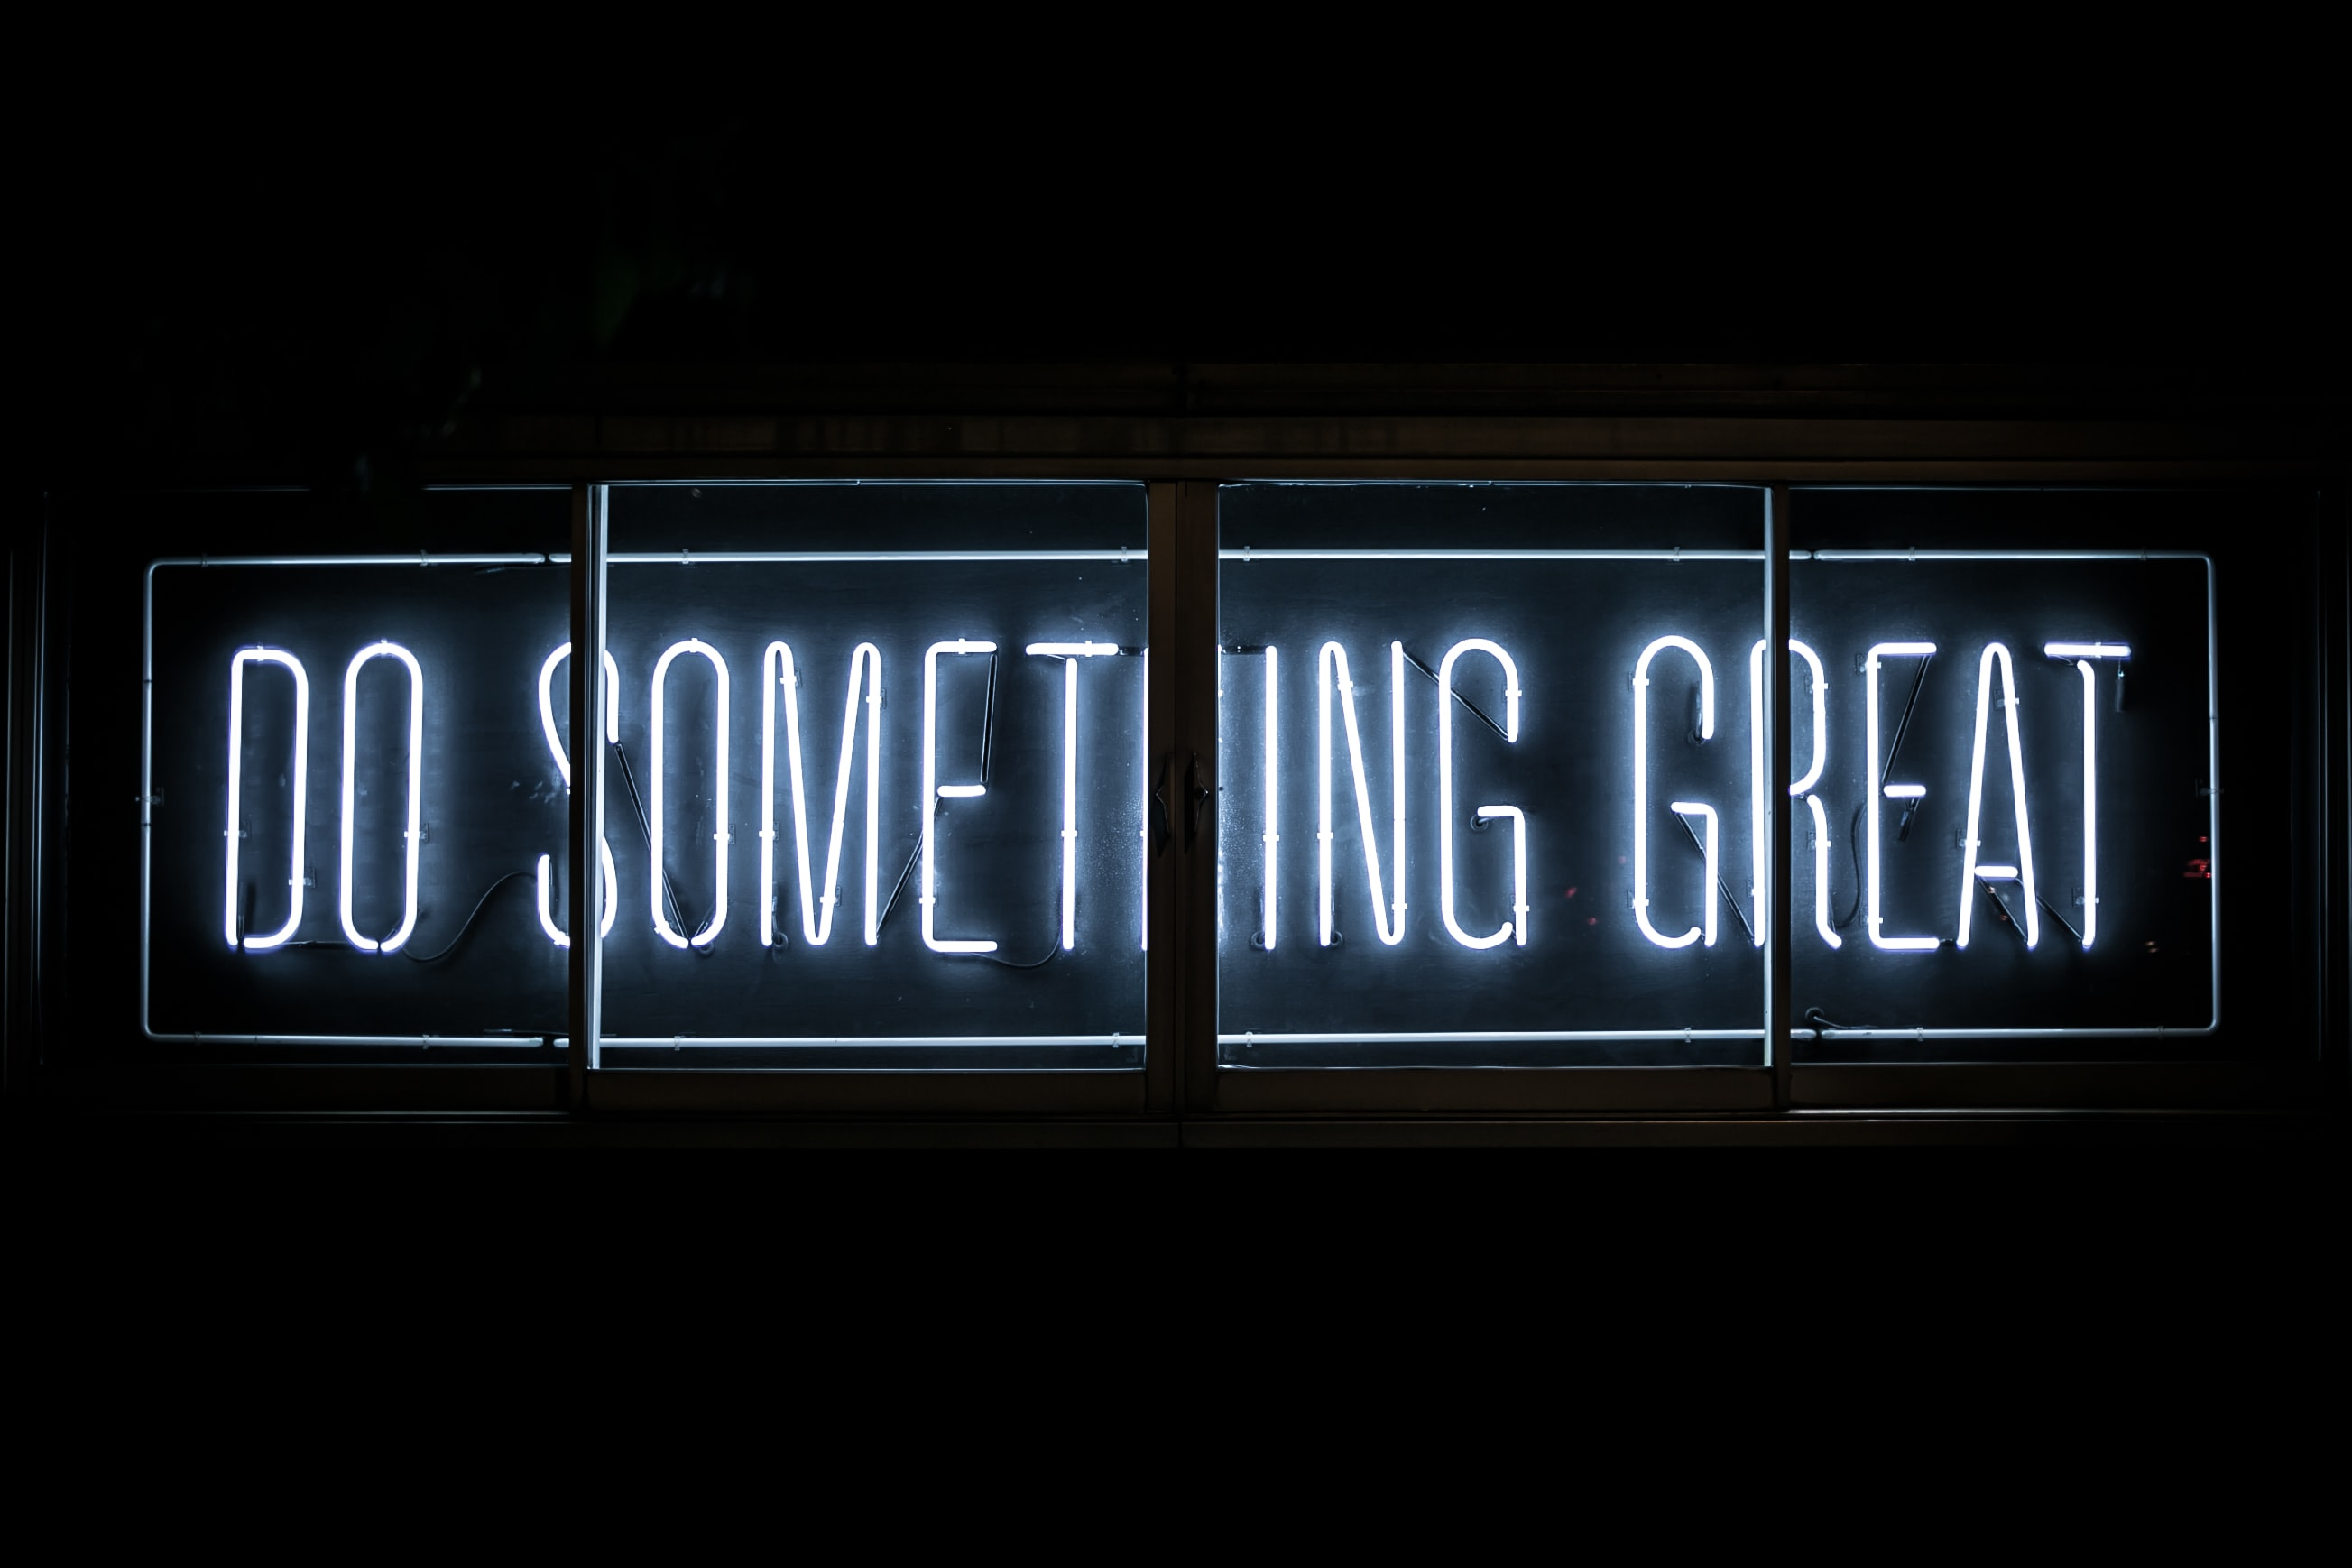 Do something great - picture